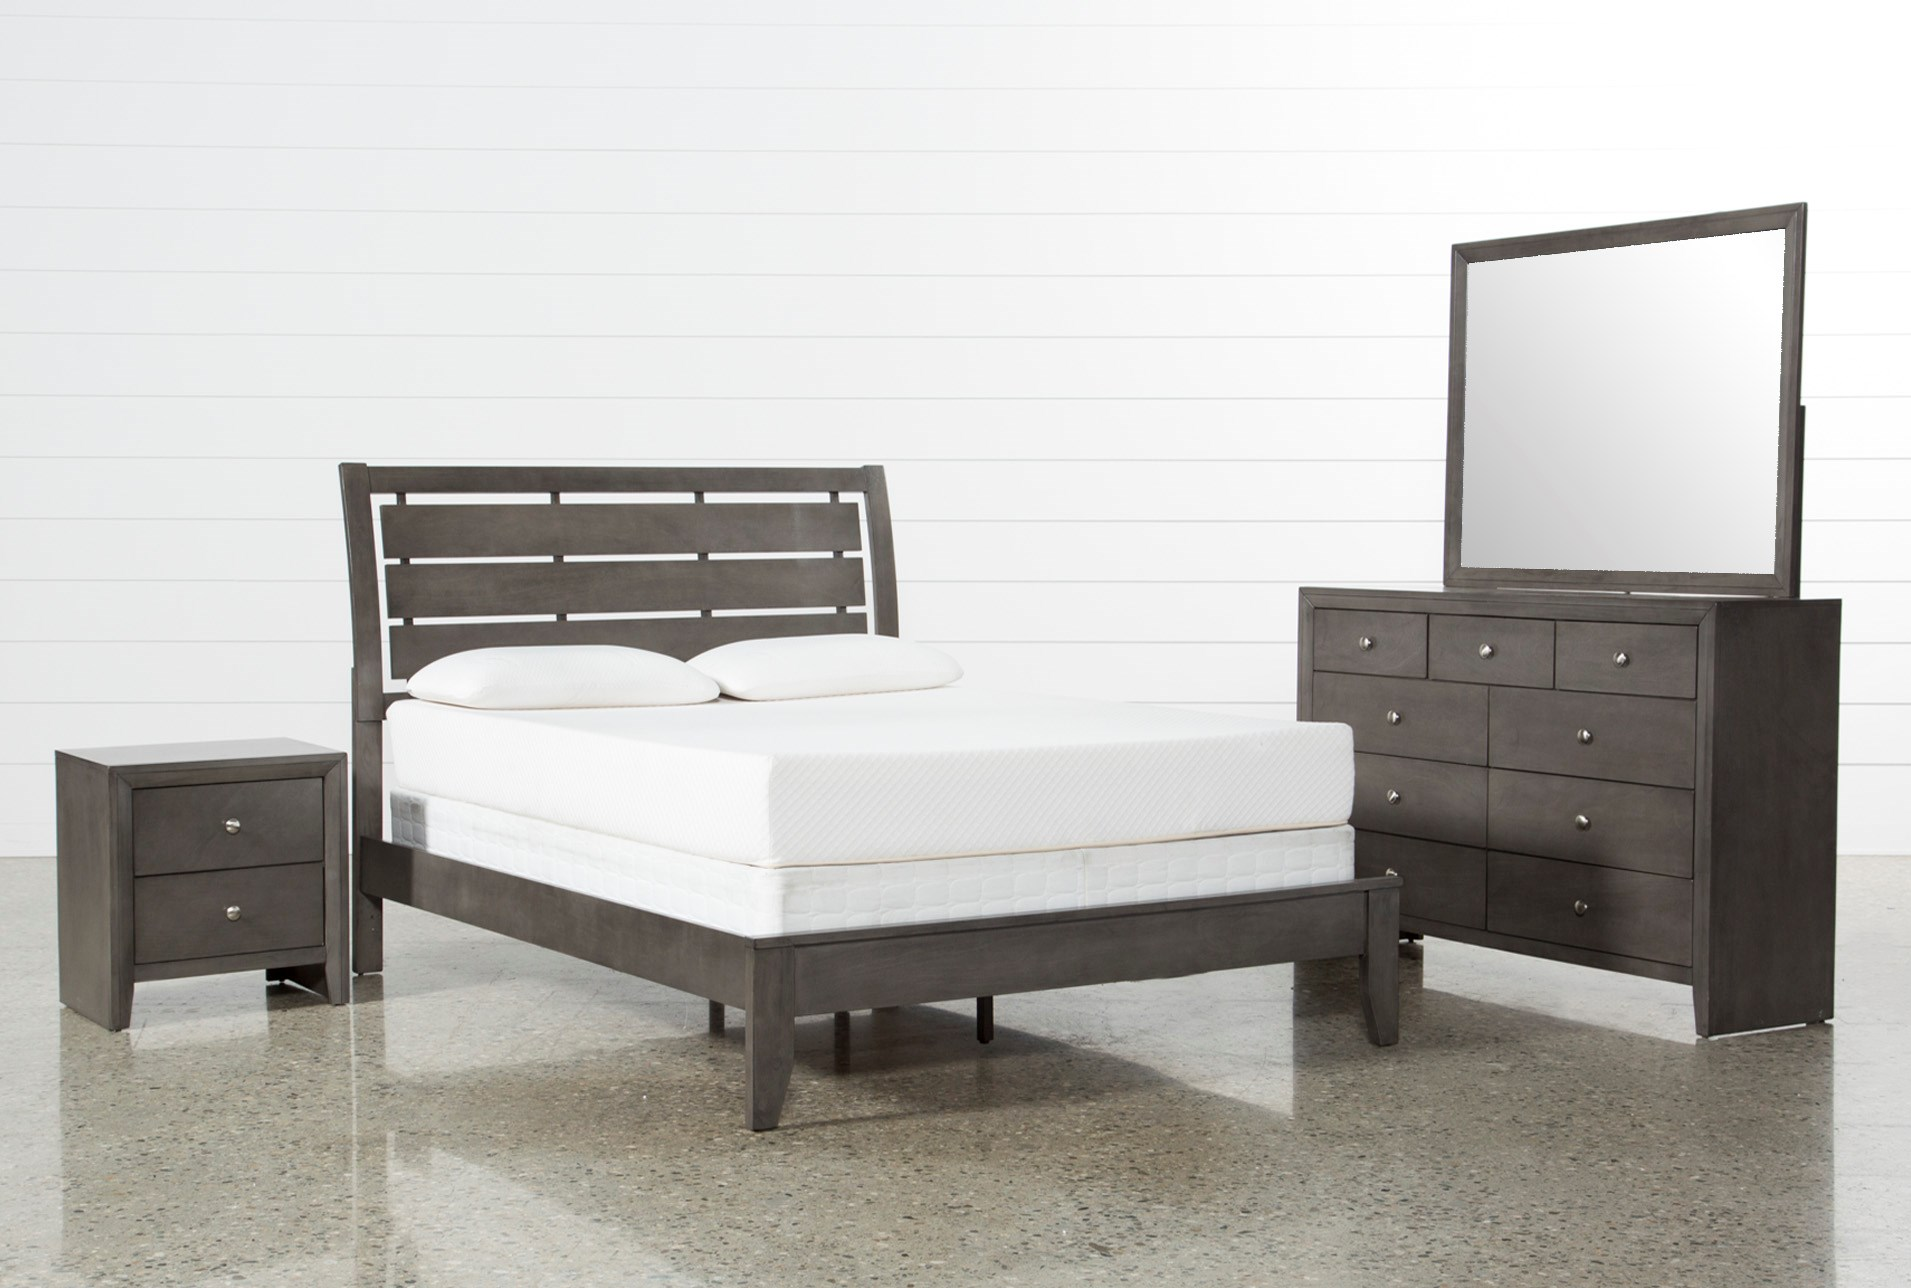 Chad Grey Eastern King 4 Piece Bedroom Set Qty 1 Has Been Successfully Added To Your Cart